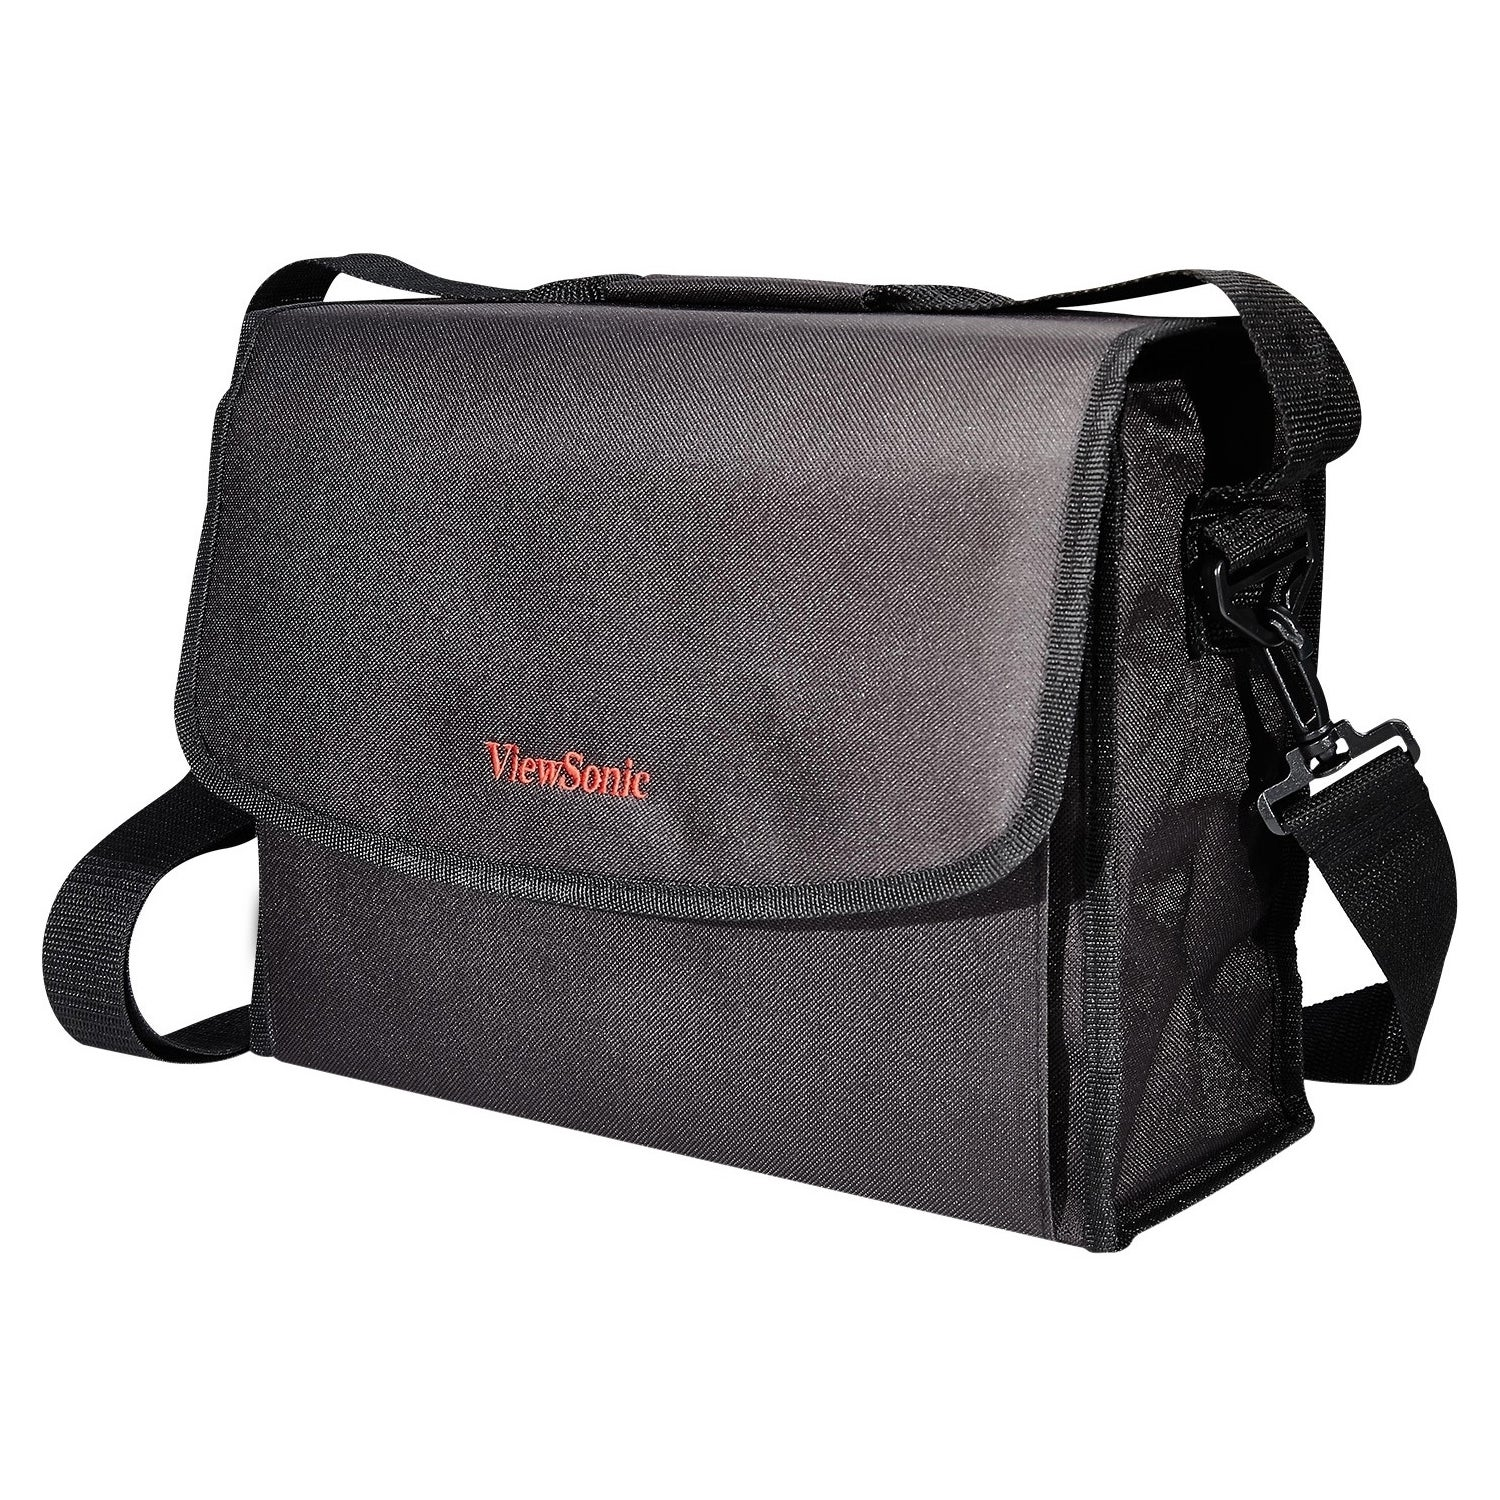 ViewSonic Carrying Case for Projector - Black #PJ-CASE-008